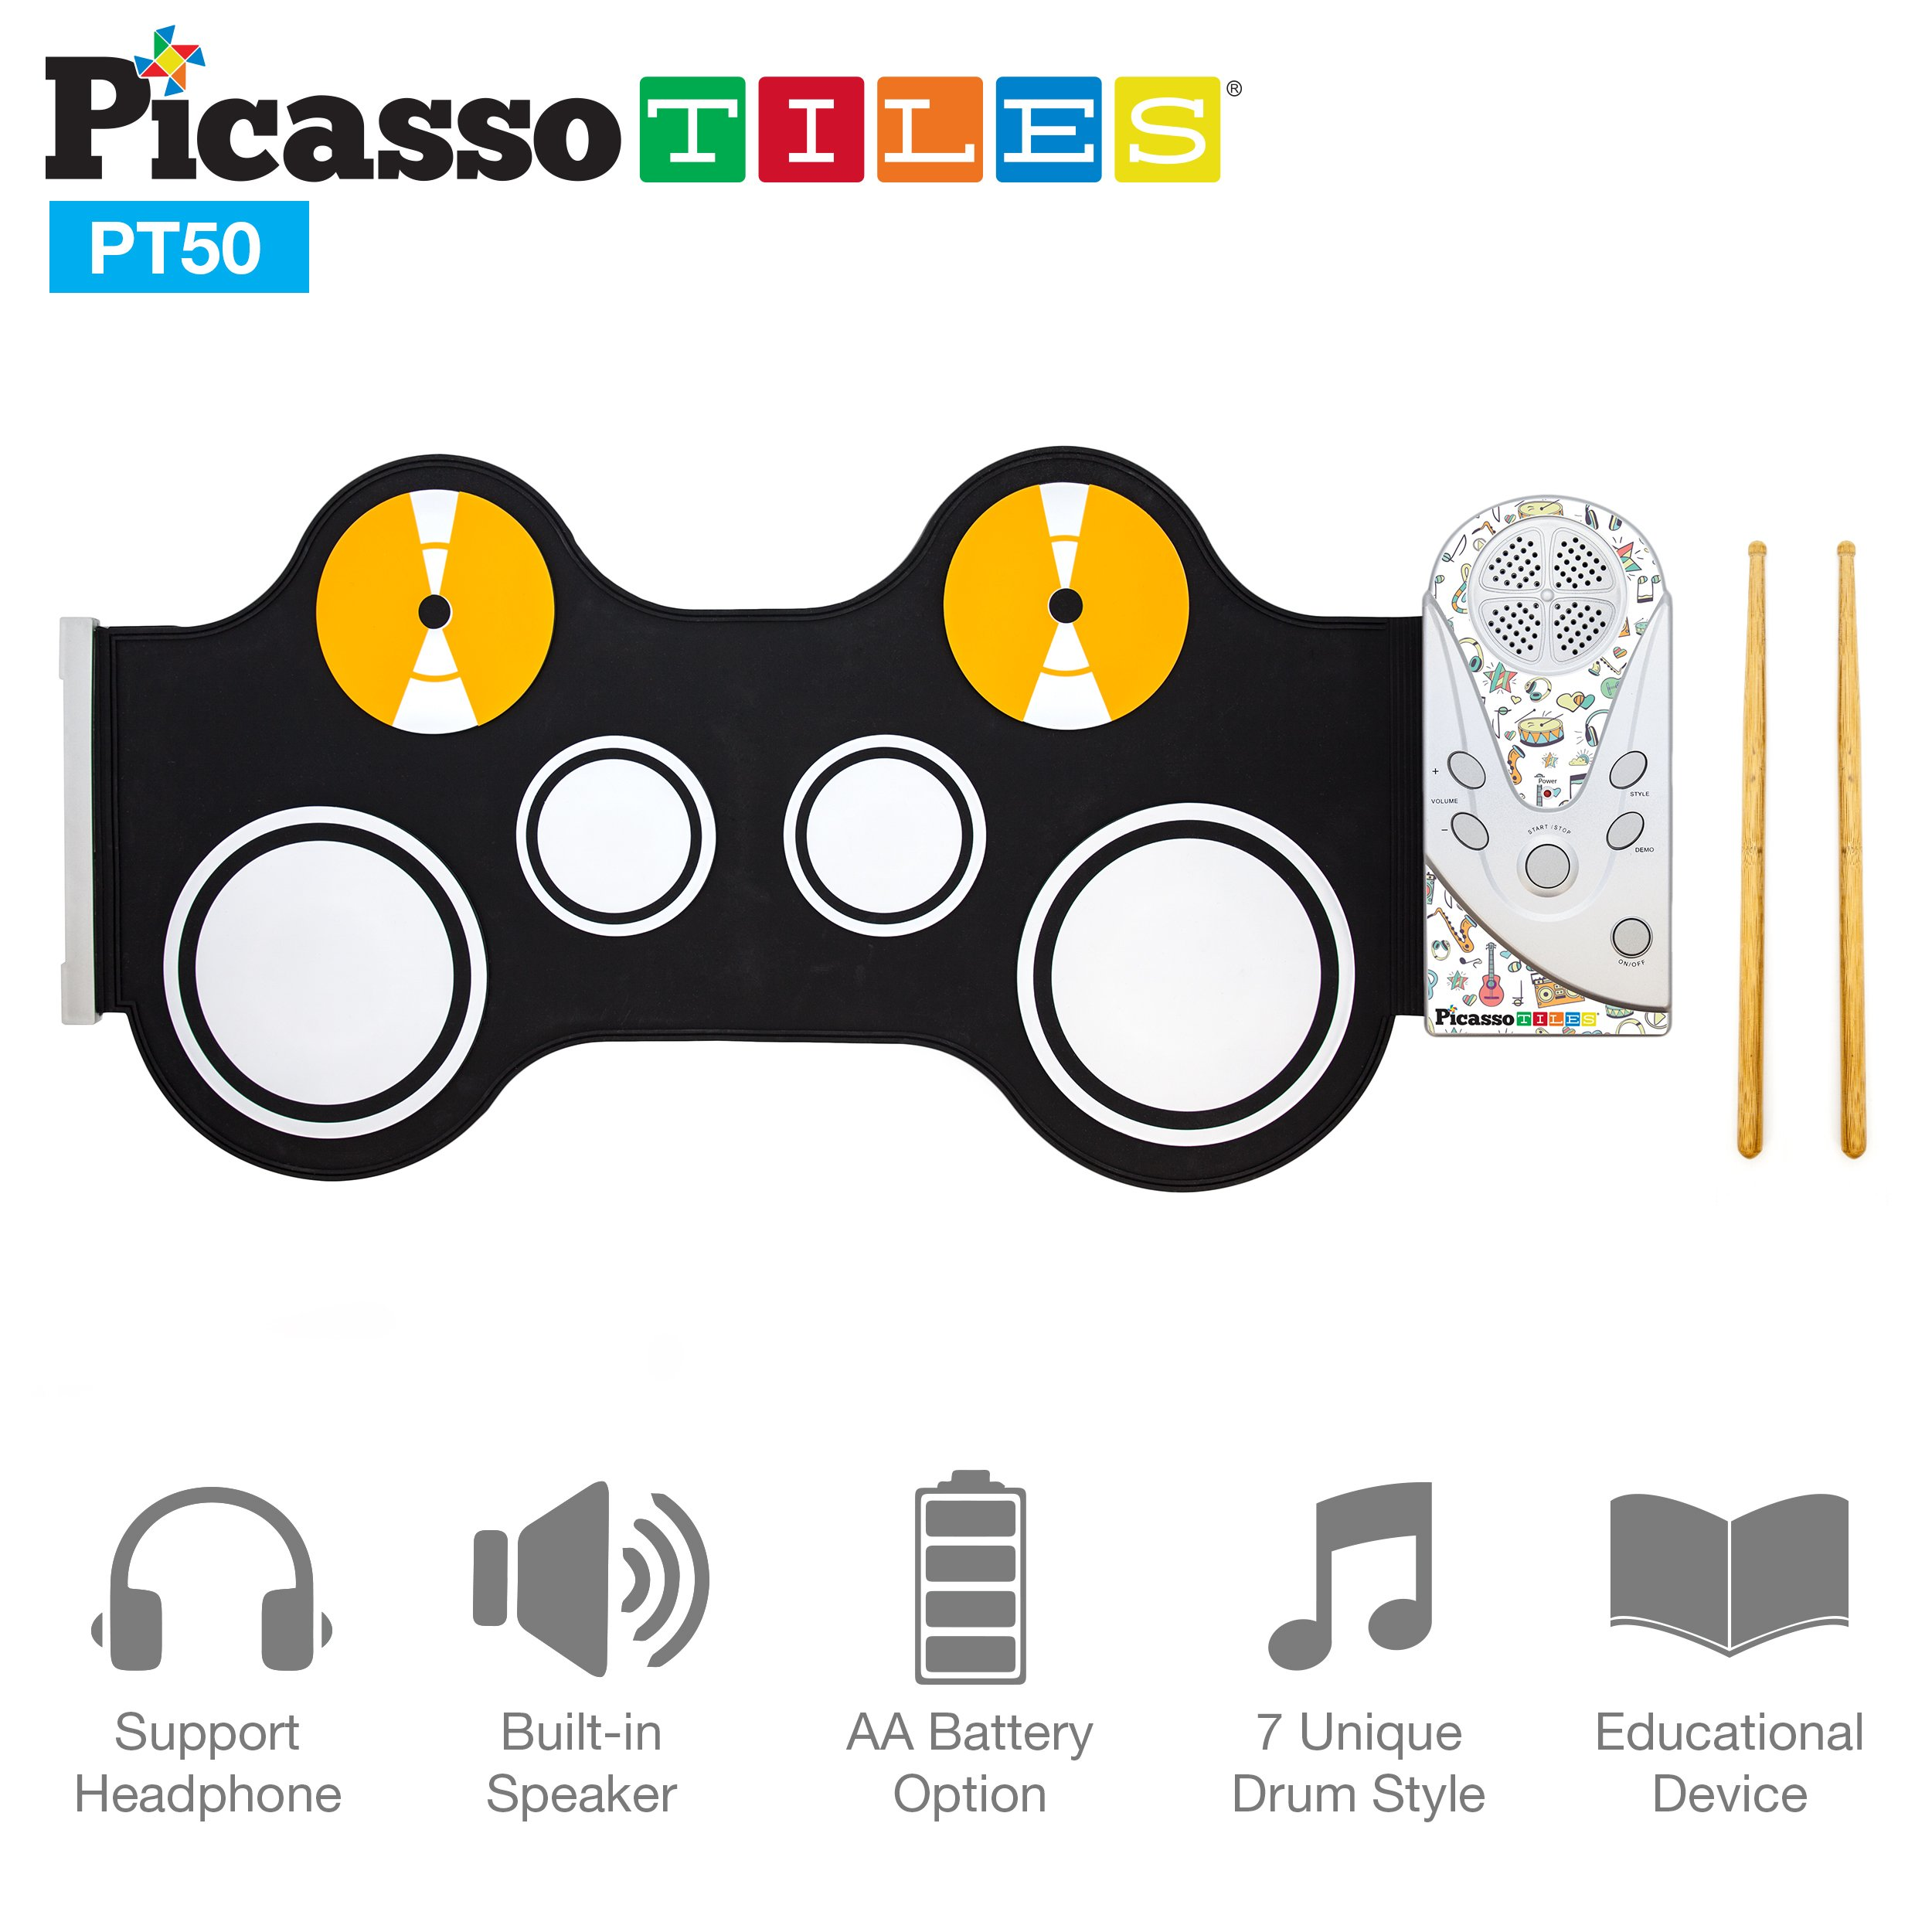 Picasso Tiles PT50 Portable Kid's Roll Up Drum, Educational Electronic Drum Set w/ 7 Different Drum Pads, Recording Feature, Headphone Jack, Build-in Speaker, Educational Demos for Toddlers & Kids